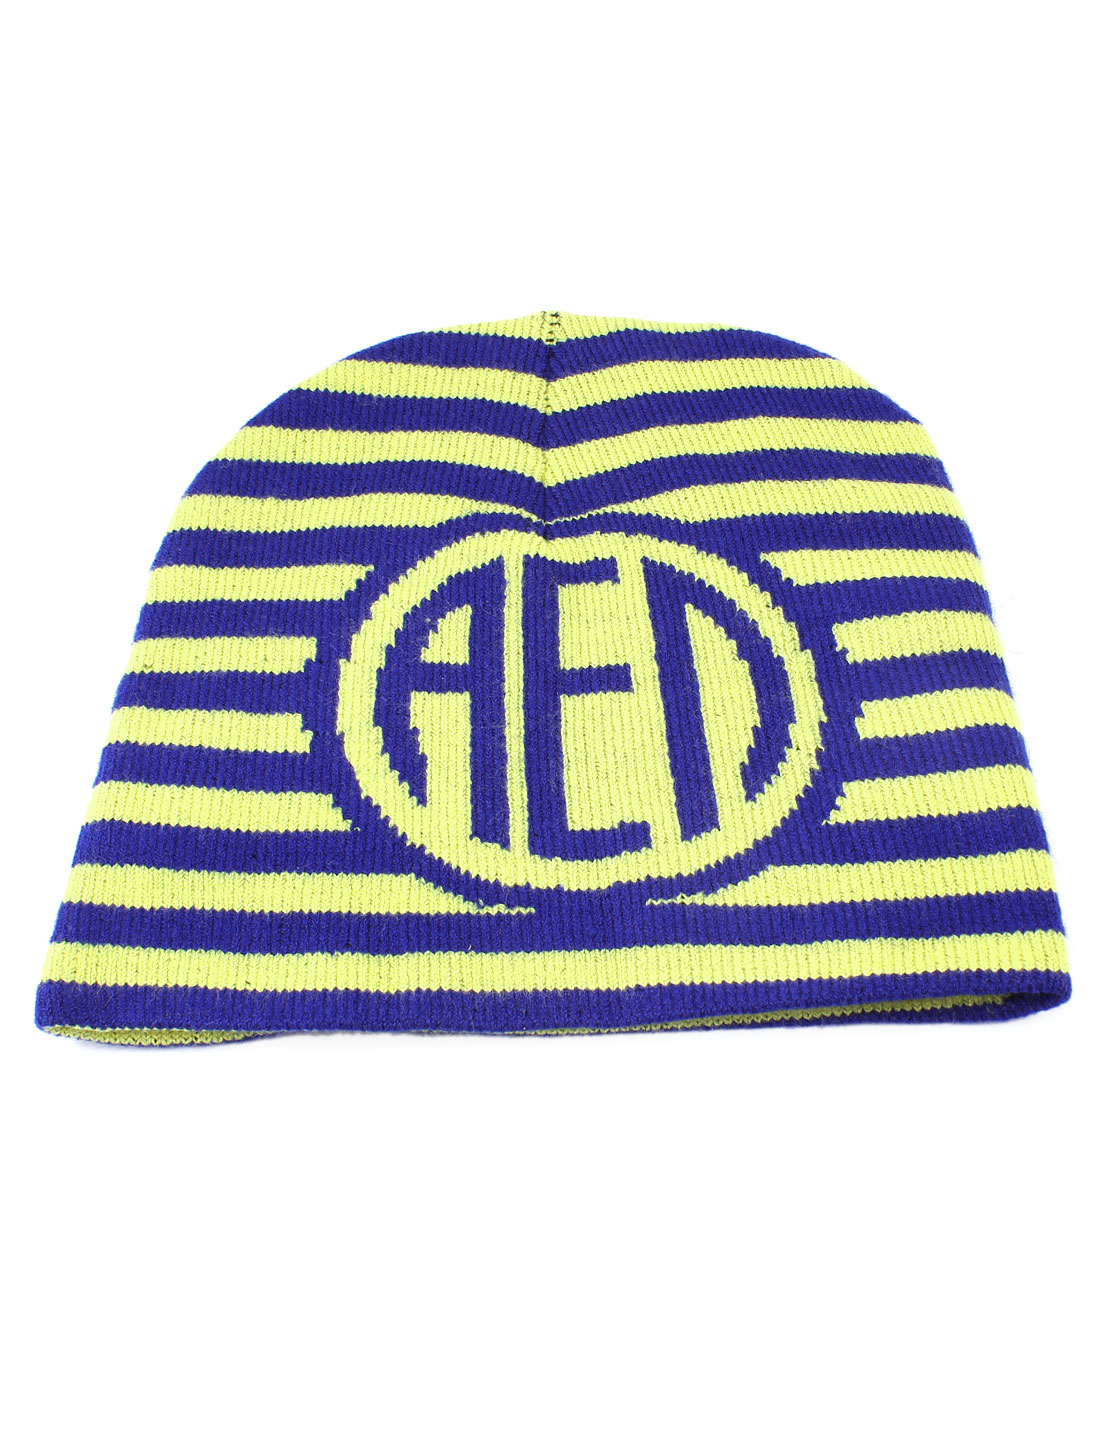 Unisex Blue Yellow Stripes Pattern Stretchy Hand Knit Warm Beanie Winter Hat Cap